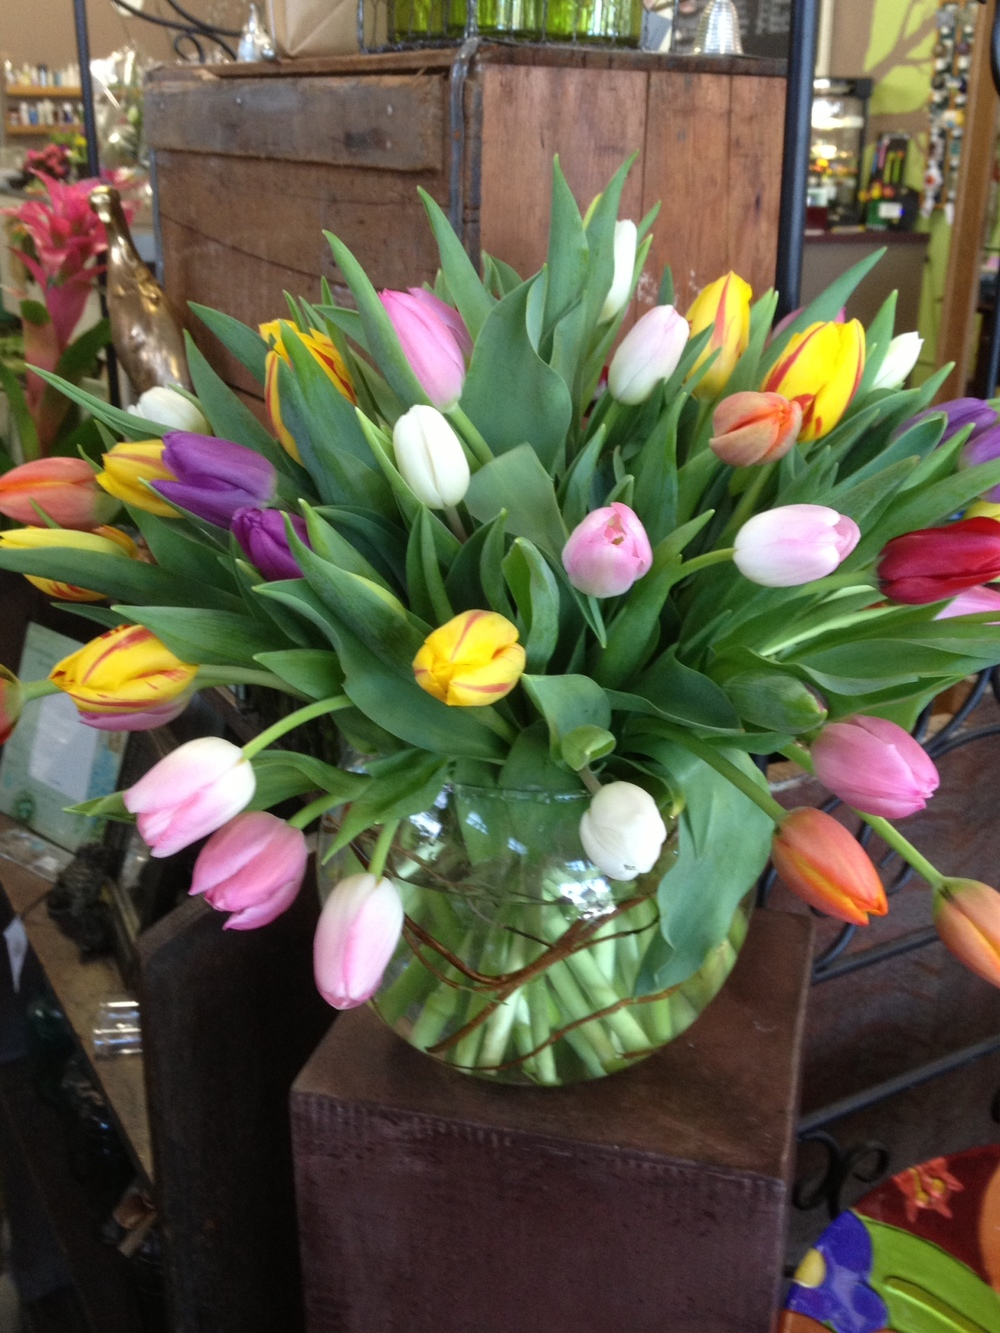 47. Multicolored Tulip Bubble Bowl Centerpiece